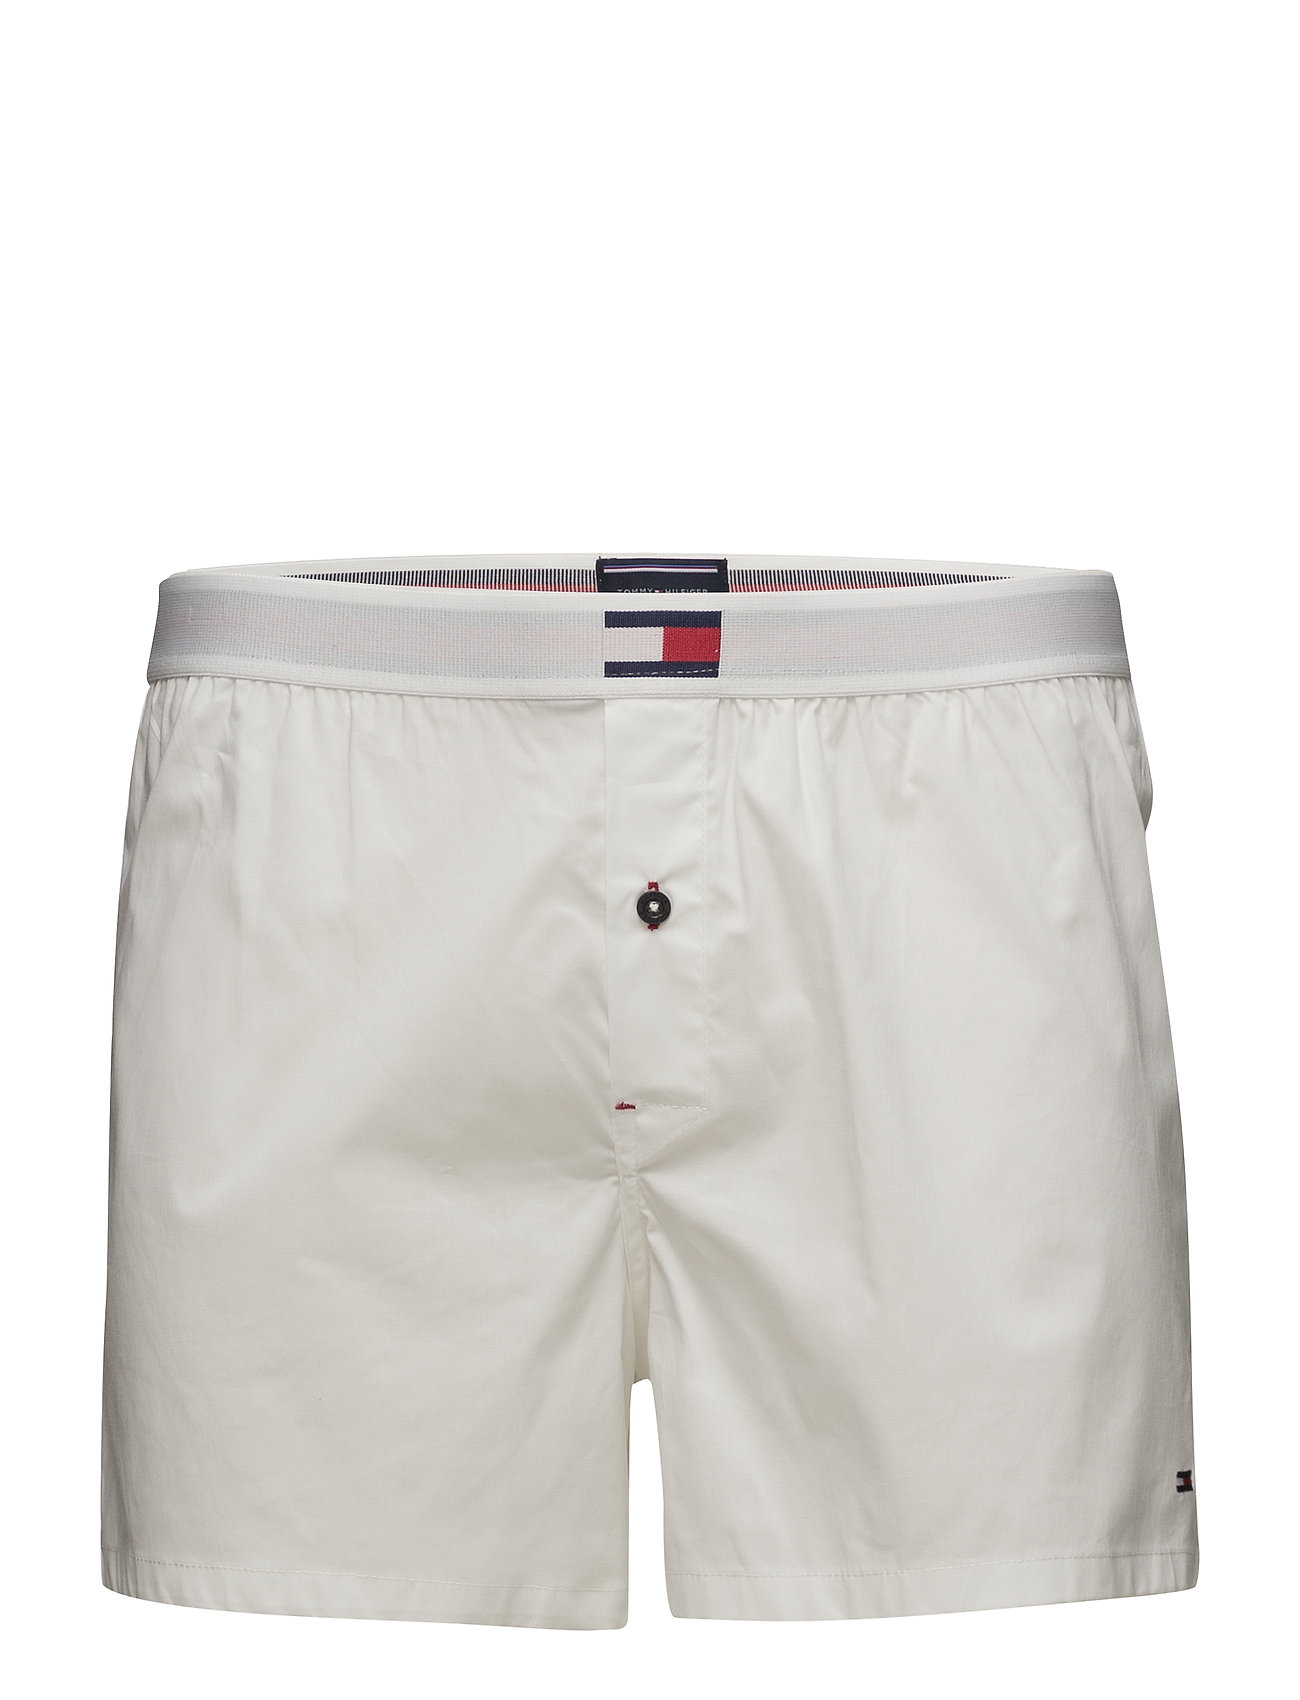 Tommy Hilfiger WOVEN BOXER - WHITE